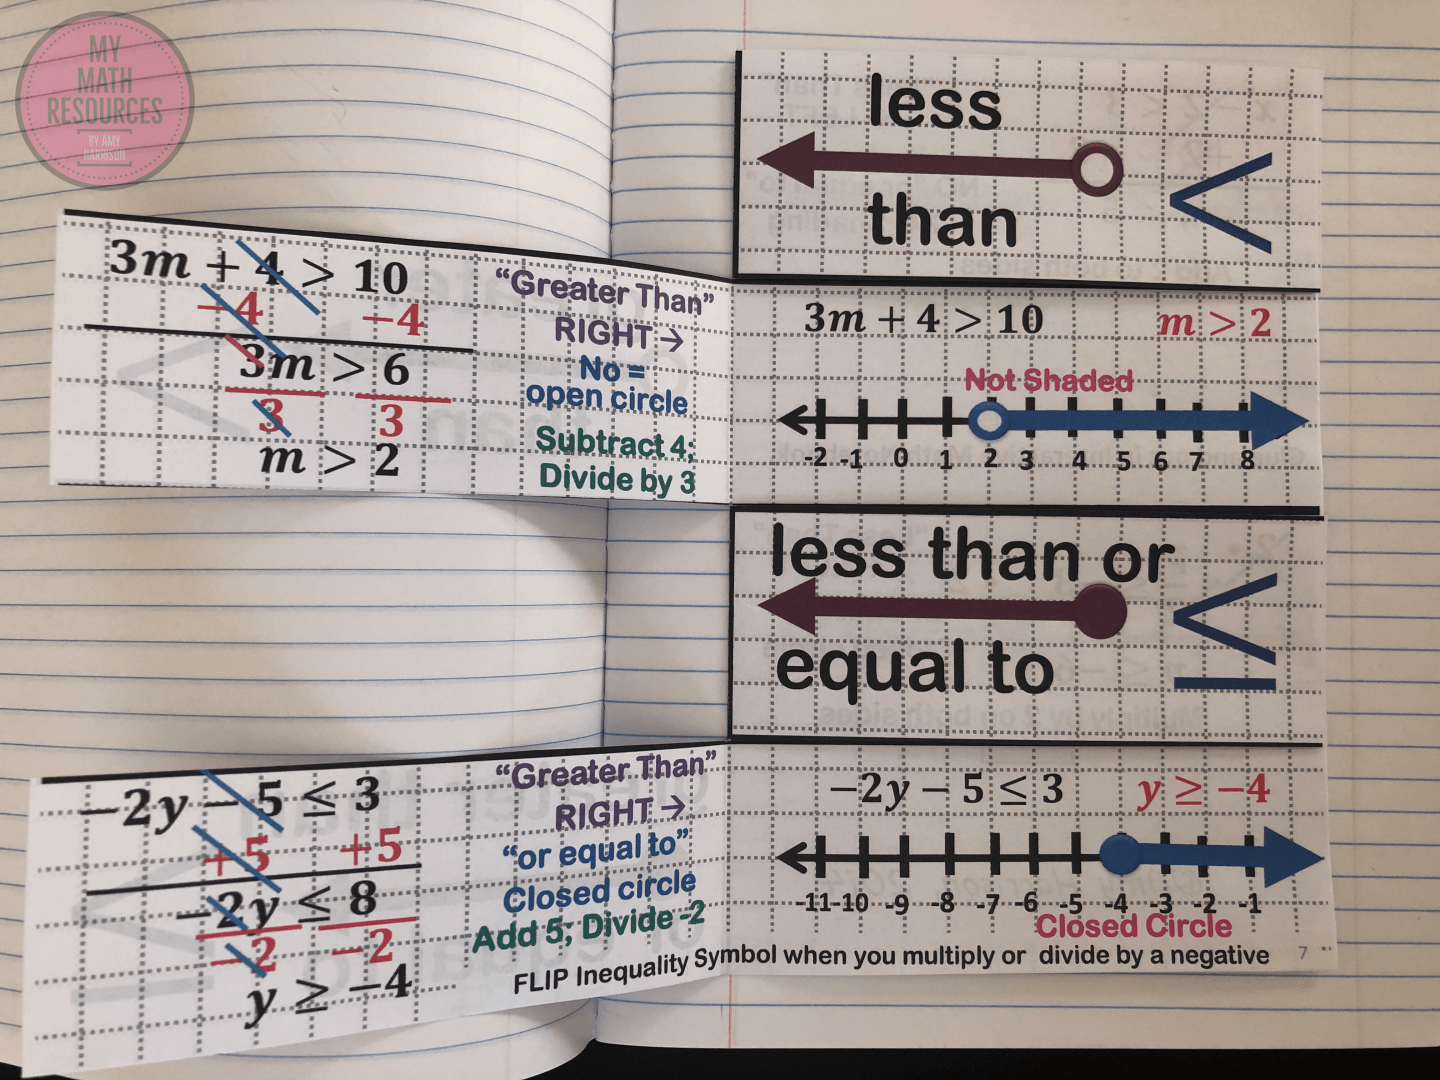 My Math Resources Solving Inequalities Foldable Solving Inequalities Solving Inequalities Foldable Inequality Foldable